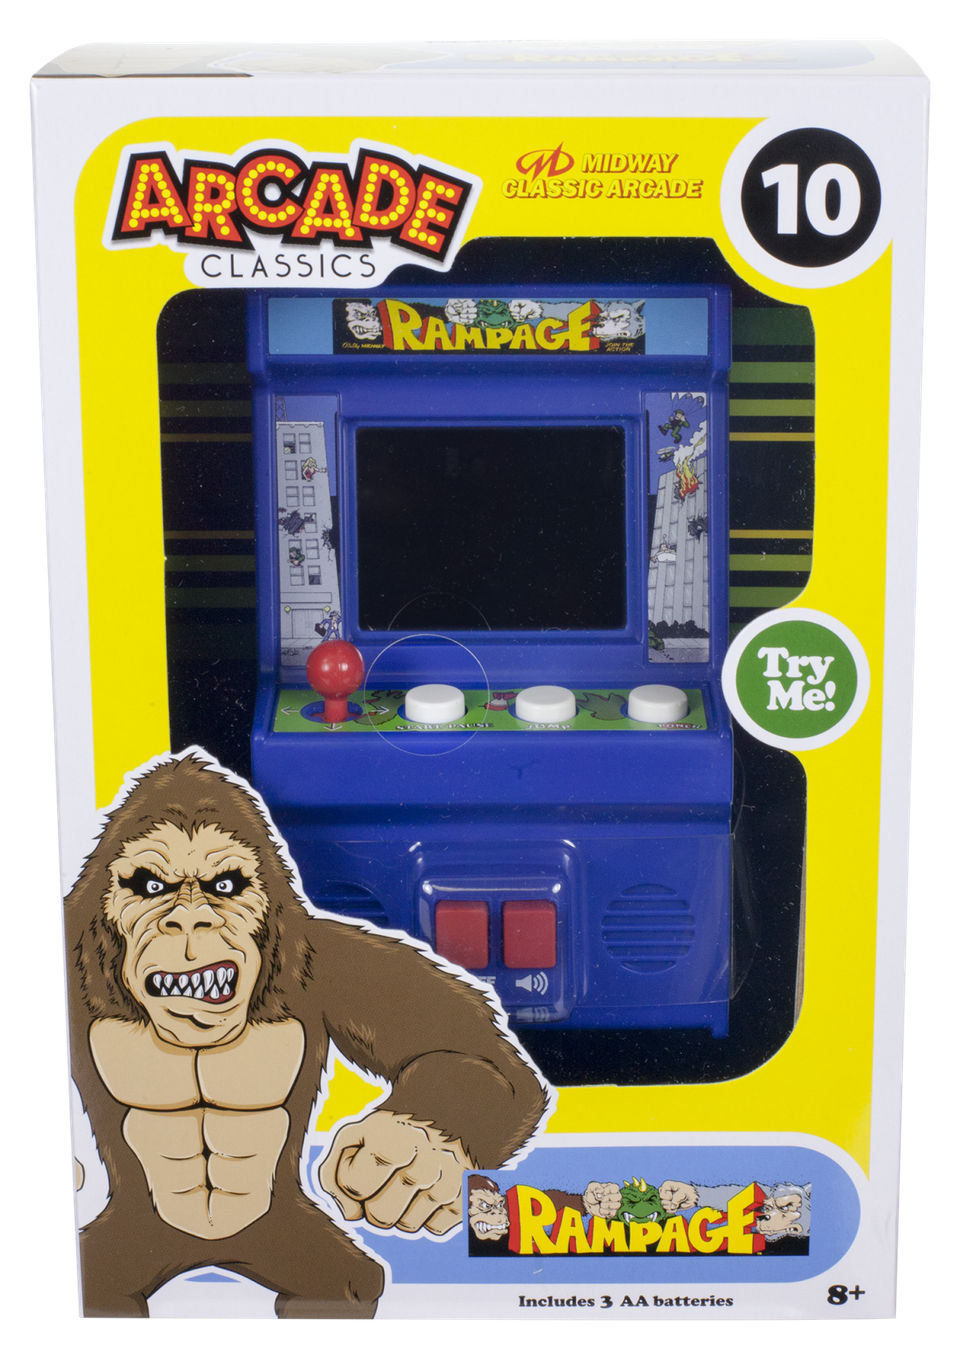 u0027Rampageu0027 Mini Arcade: Big Fun, Small Screen - Arcade Fun PNG